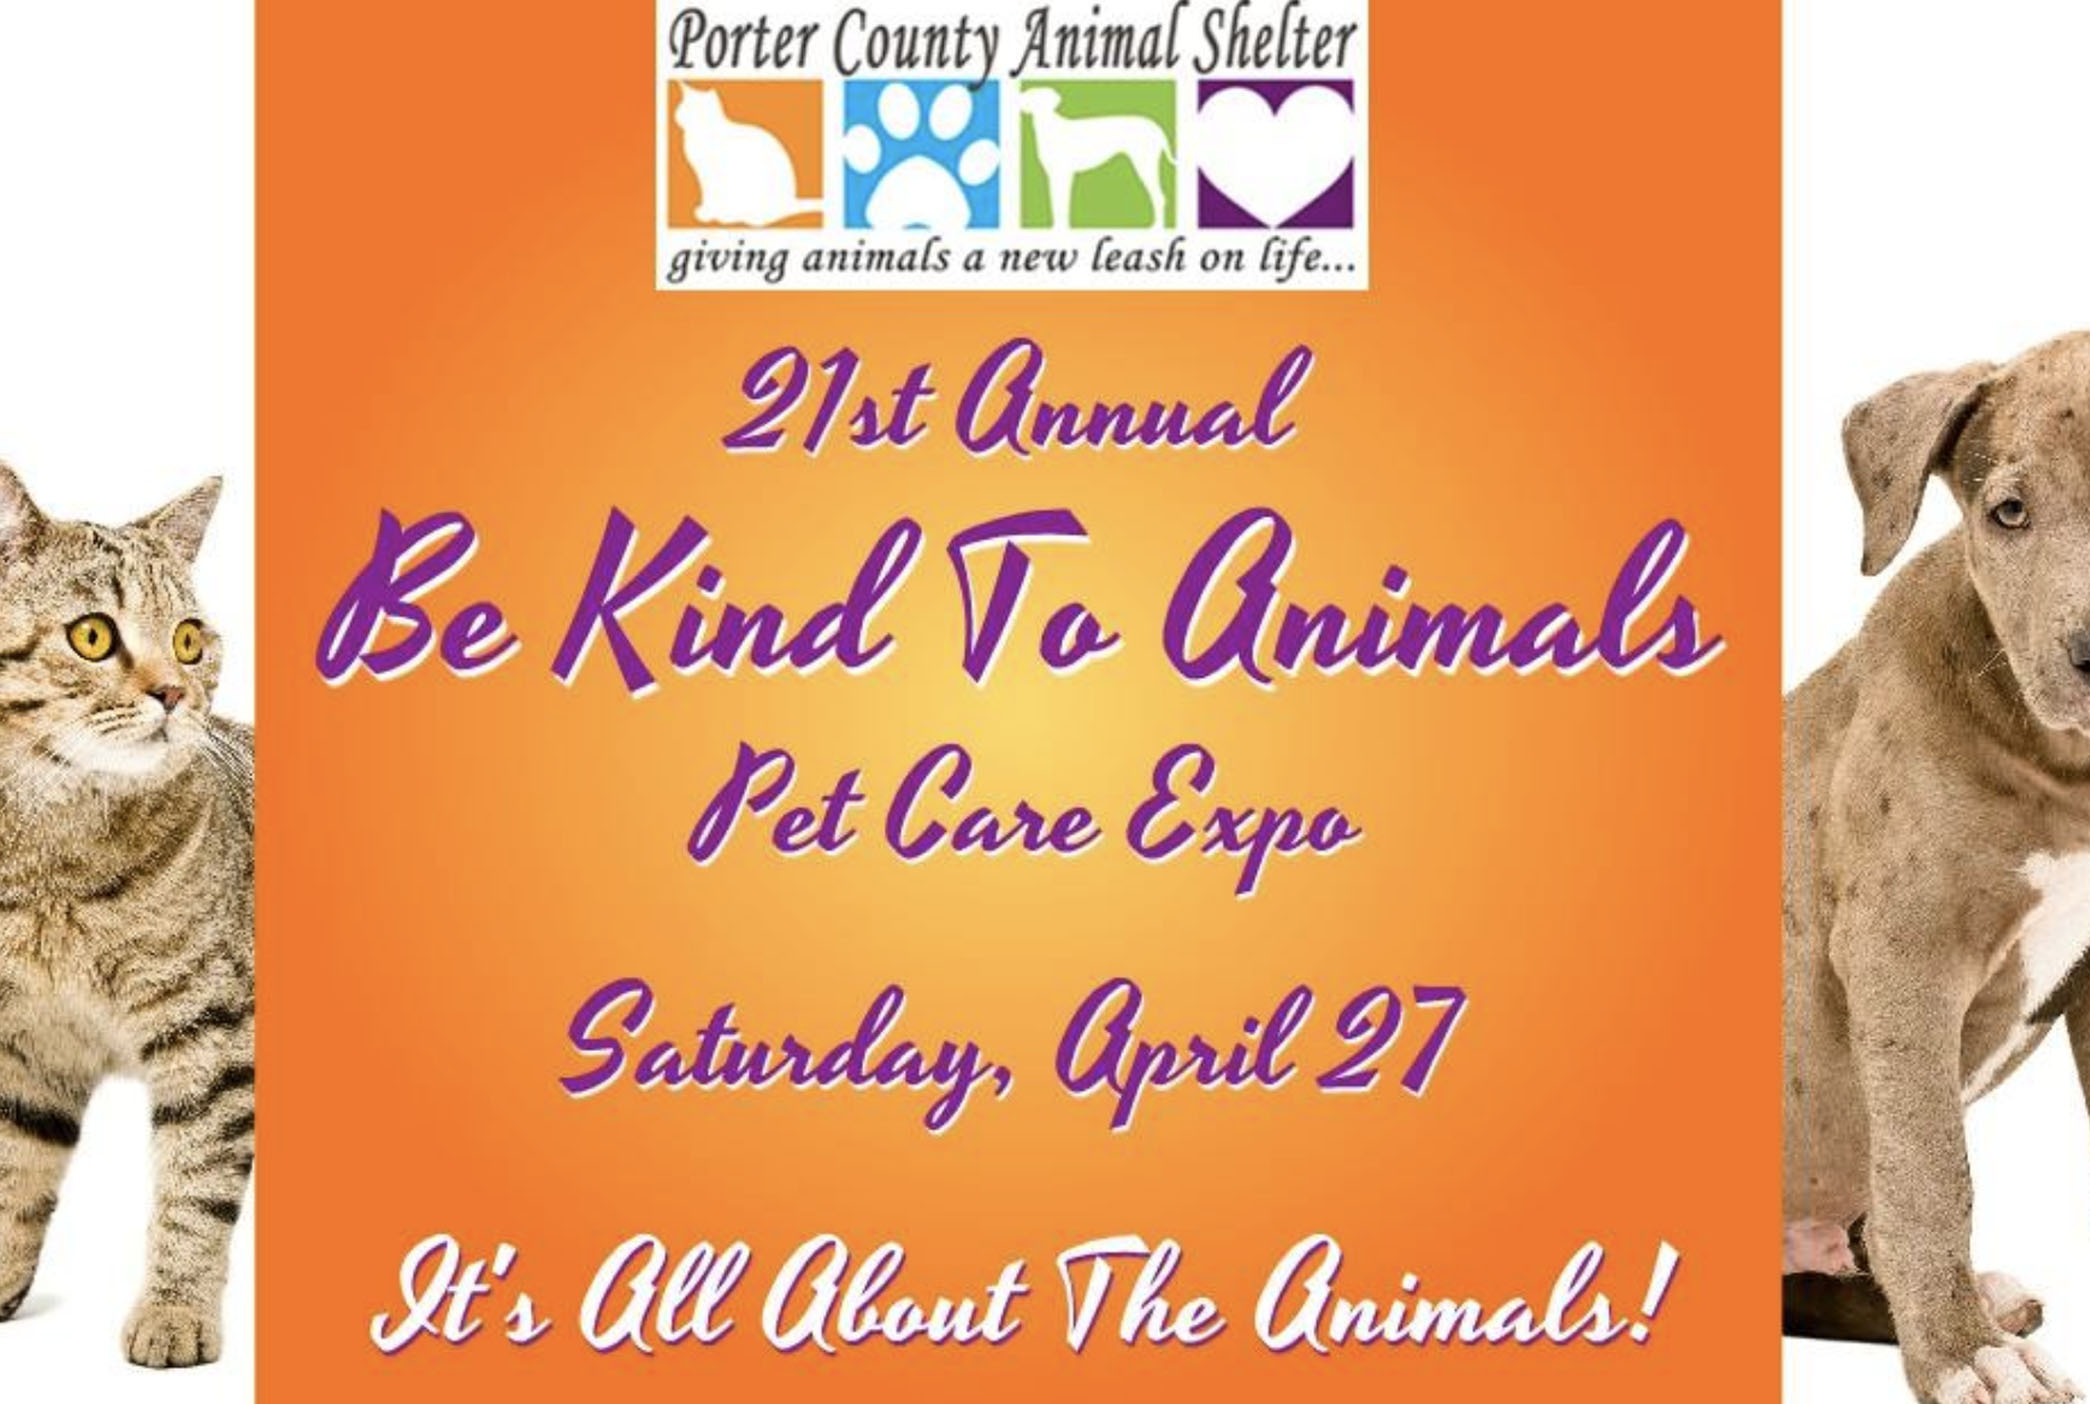 Come see pet non-profits, rescues, vets, pet hospitals, pet photographer, pet supply stores, microchip clinic, food, raffles, door prizes and, of course, ANIMALS!